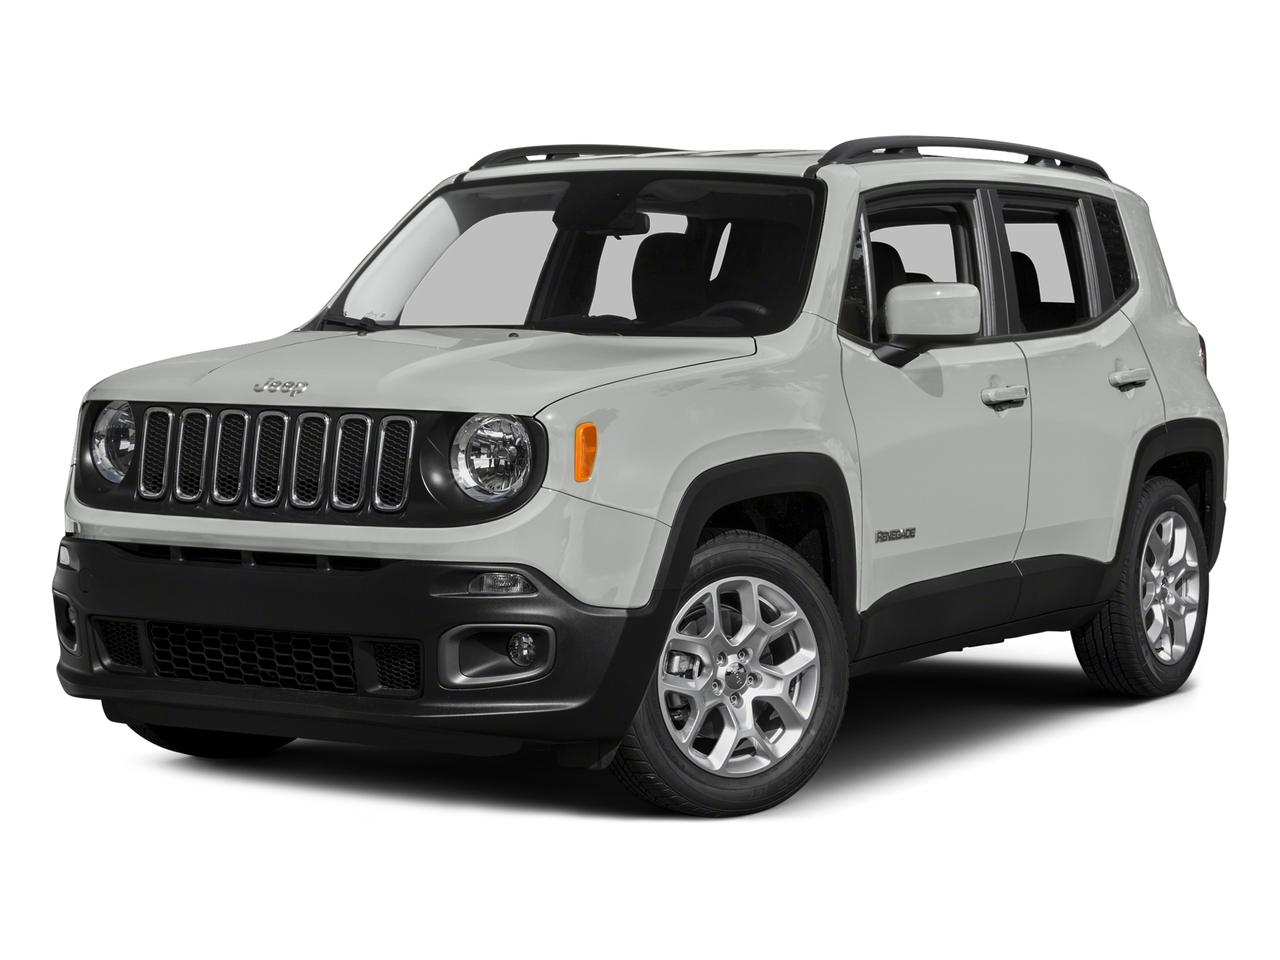 2015 Jeep Renegade Vehicle Photo in Williamsville, NY 14221